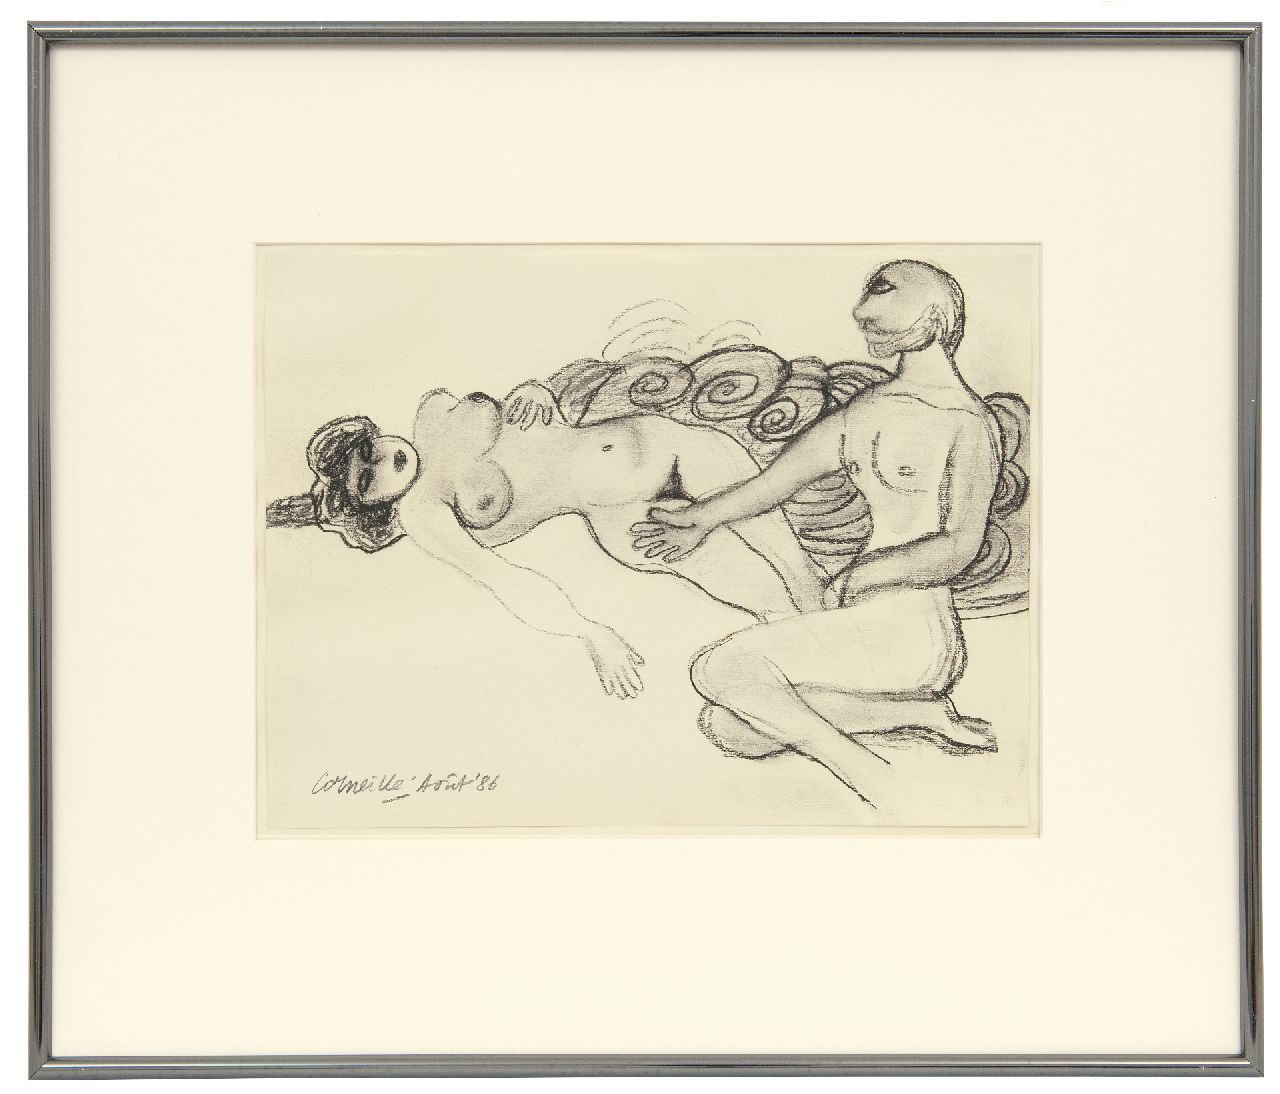 Corneille ('Corneille' Guillaume Beverloo)   | Corneille ('Corneille' Guillaume Beverloo) | Watercolours and other works on paper offered for sale | Man and woman, charcoal on paper 23.7 x 31.8 cm, signed l.l. and dated Août '86